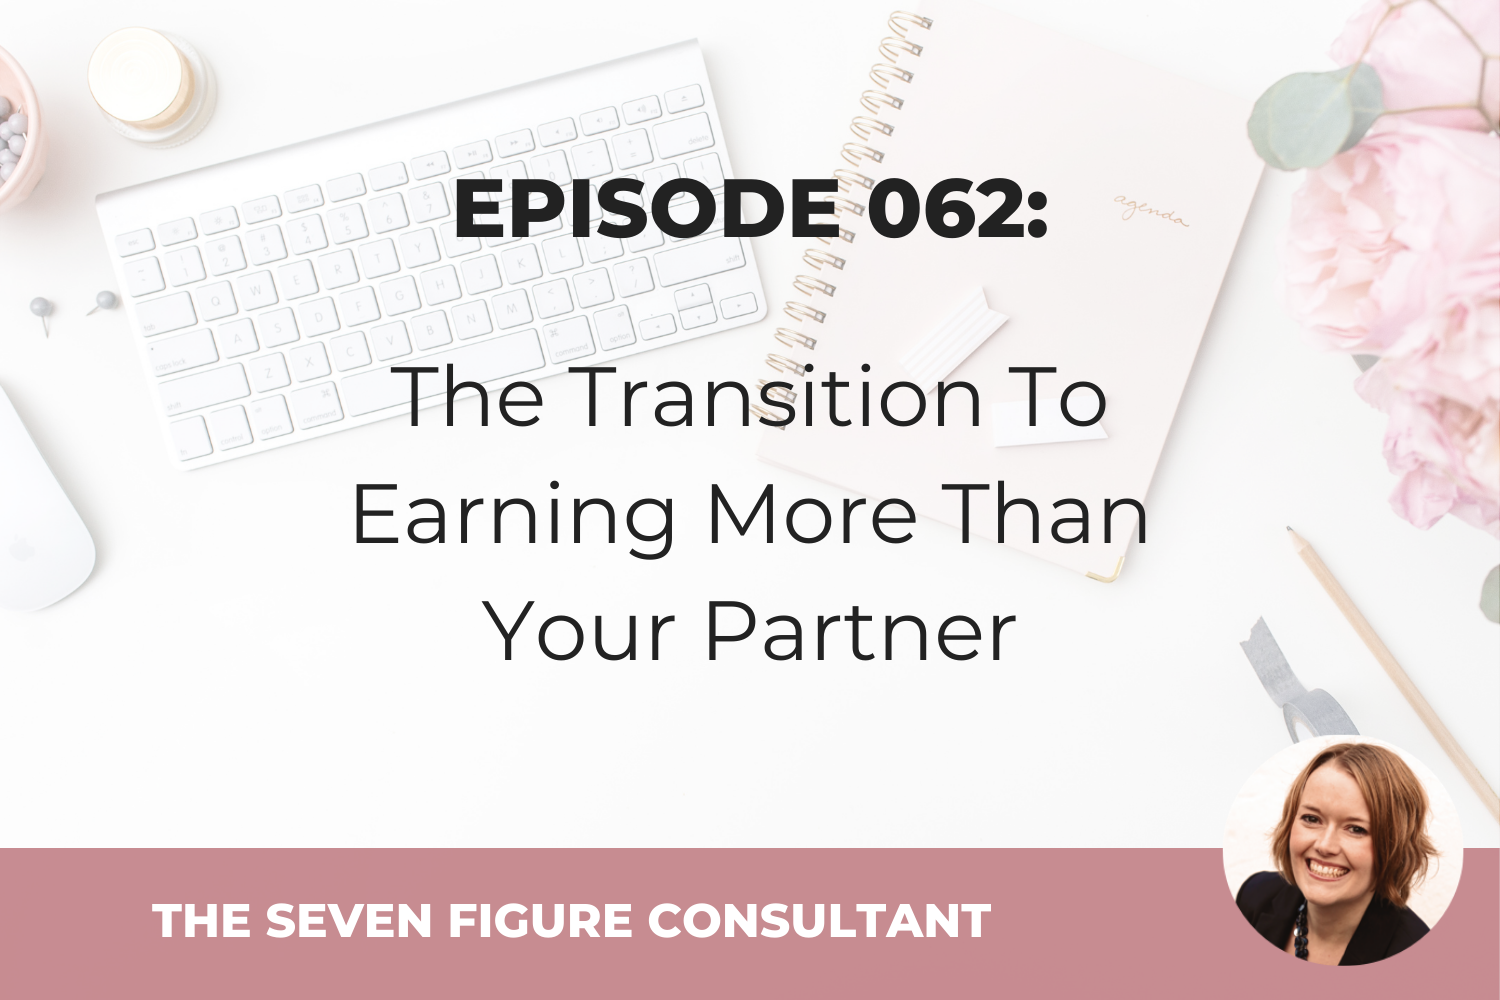 Episode 062: The Transition To Earning More Than Your Partner